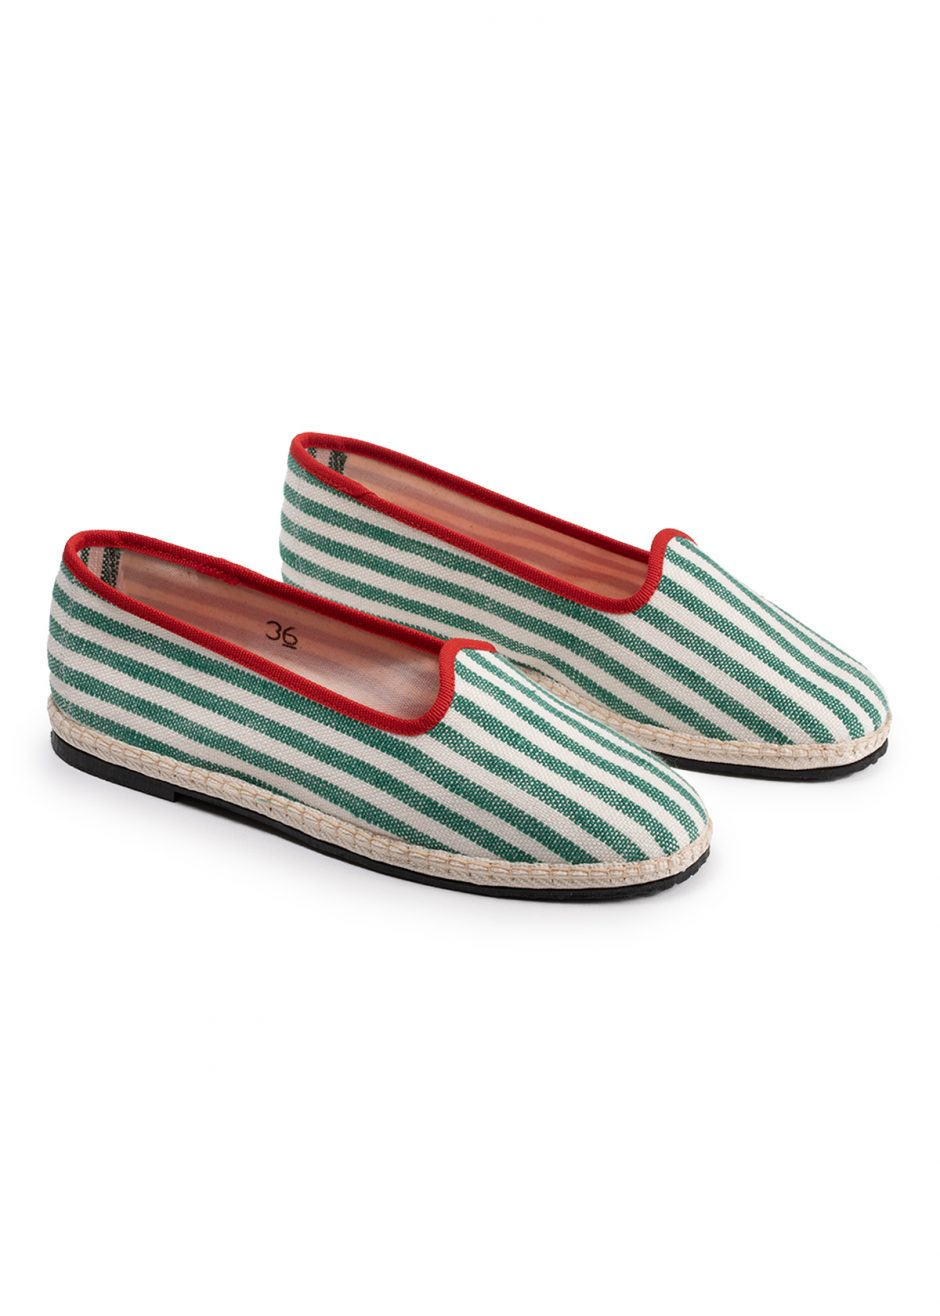 Daisy – Furlana green striped linen